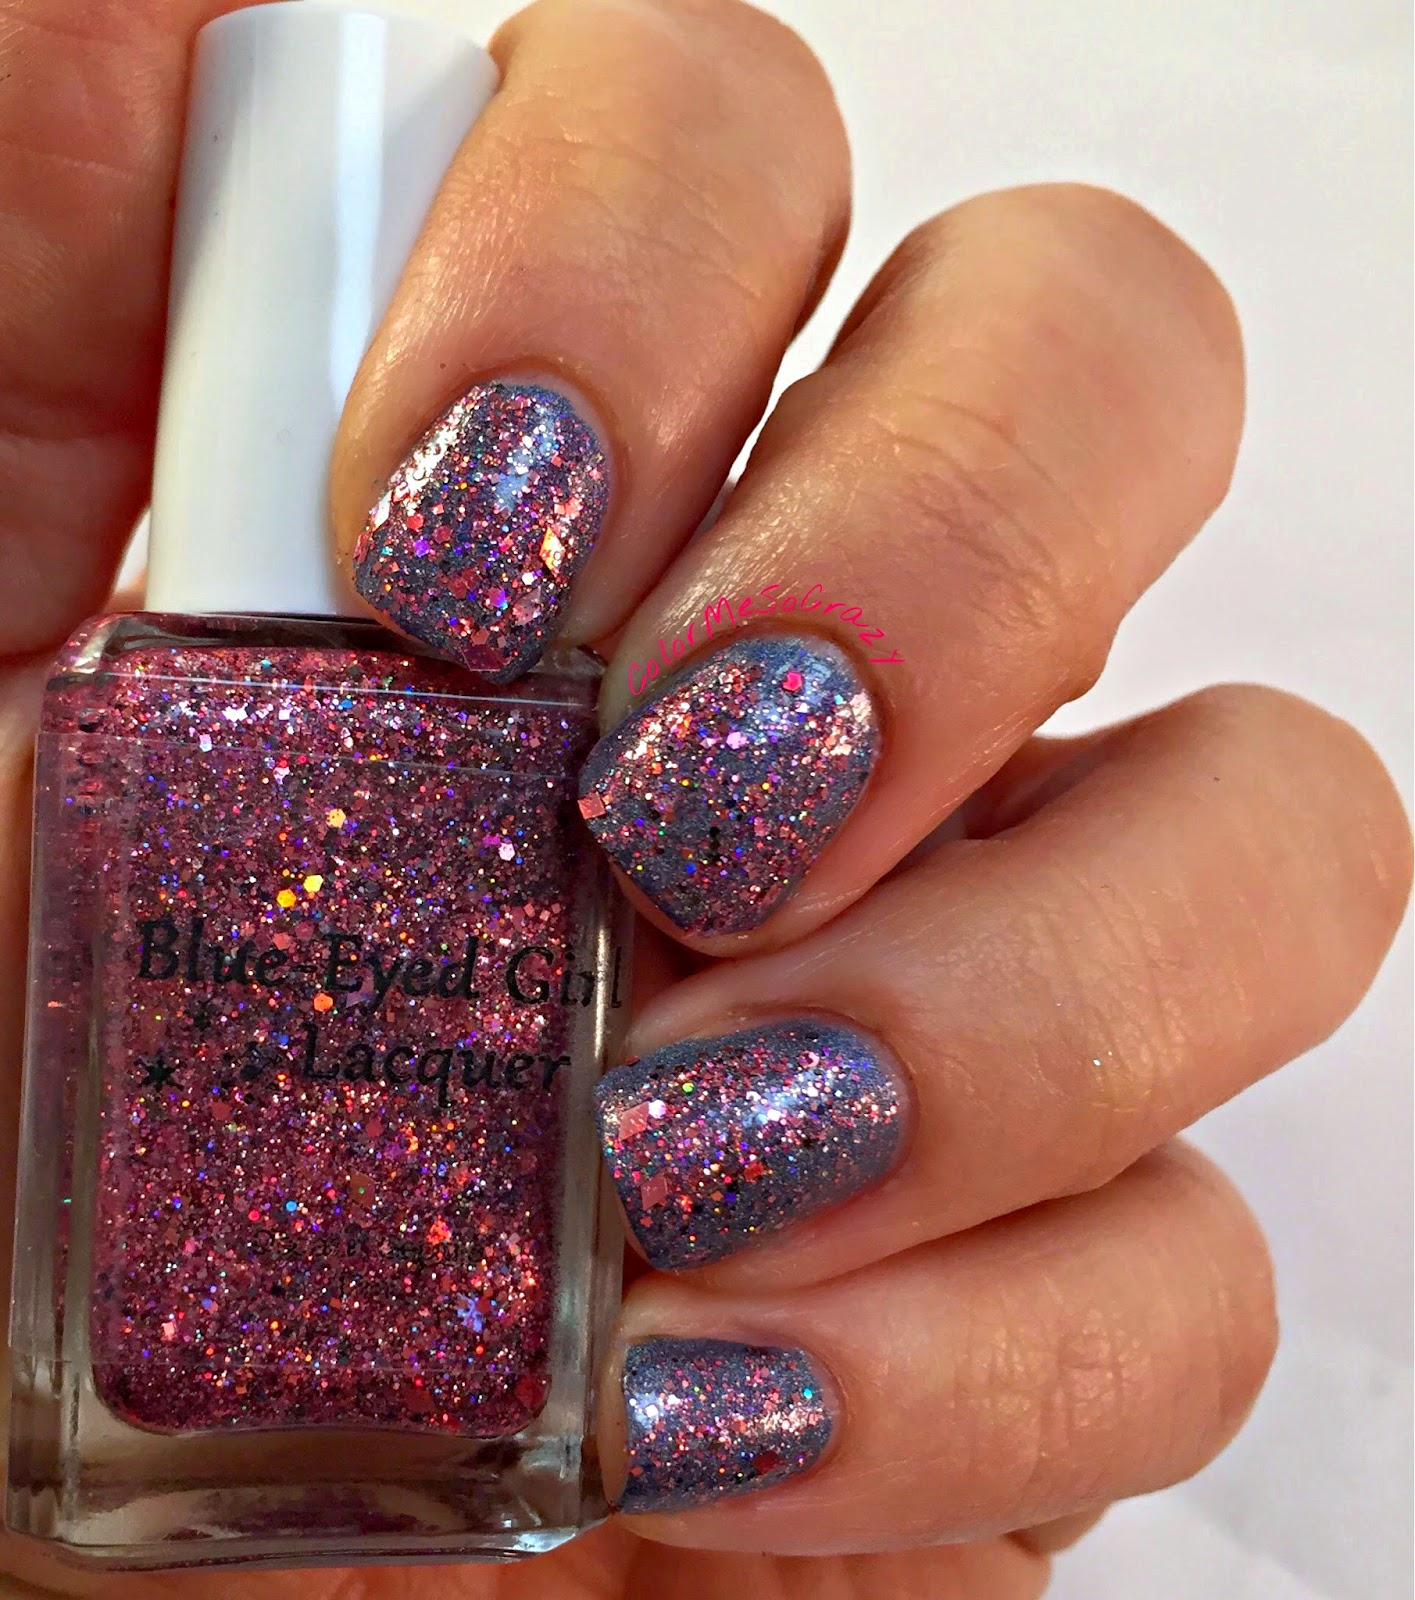 begl, blue eyed girl lacquer, nail polish, pink, spark in the dark, Couting down until I see you, pink glitter indie polish, hypothermia